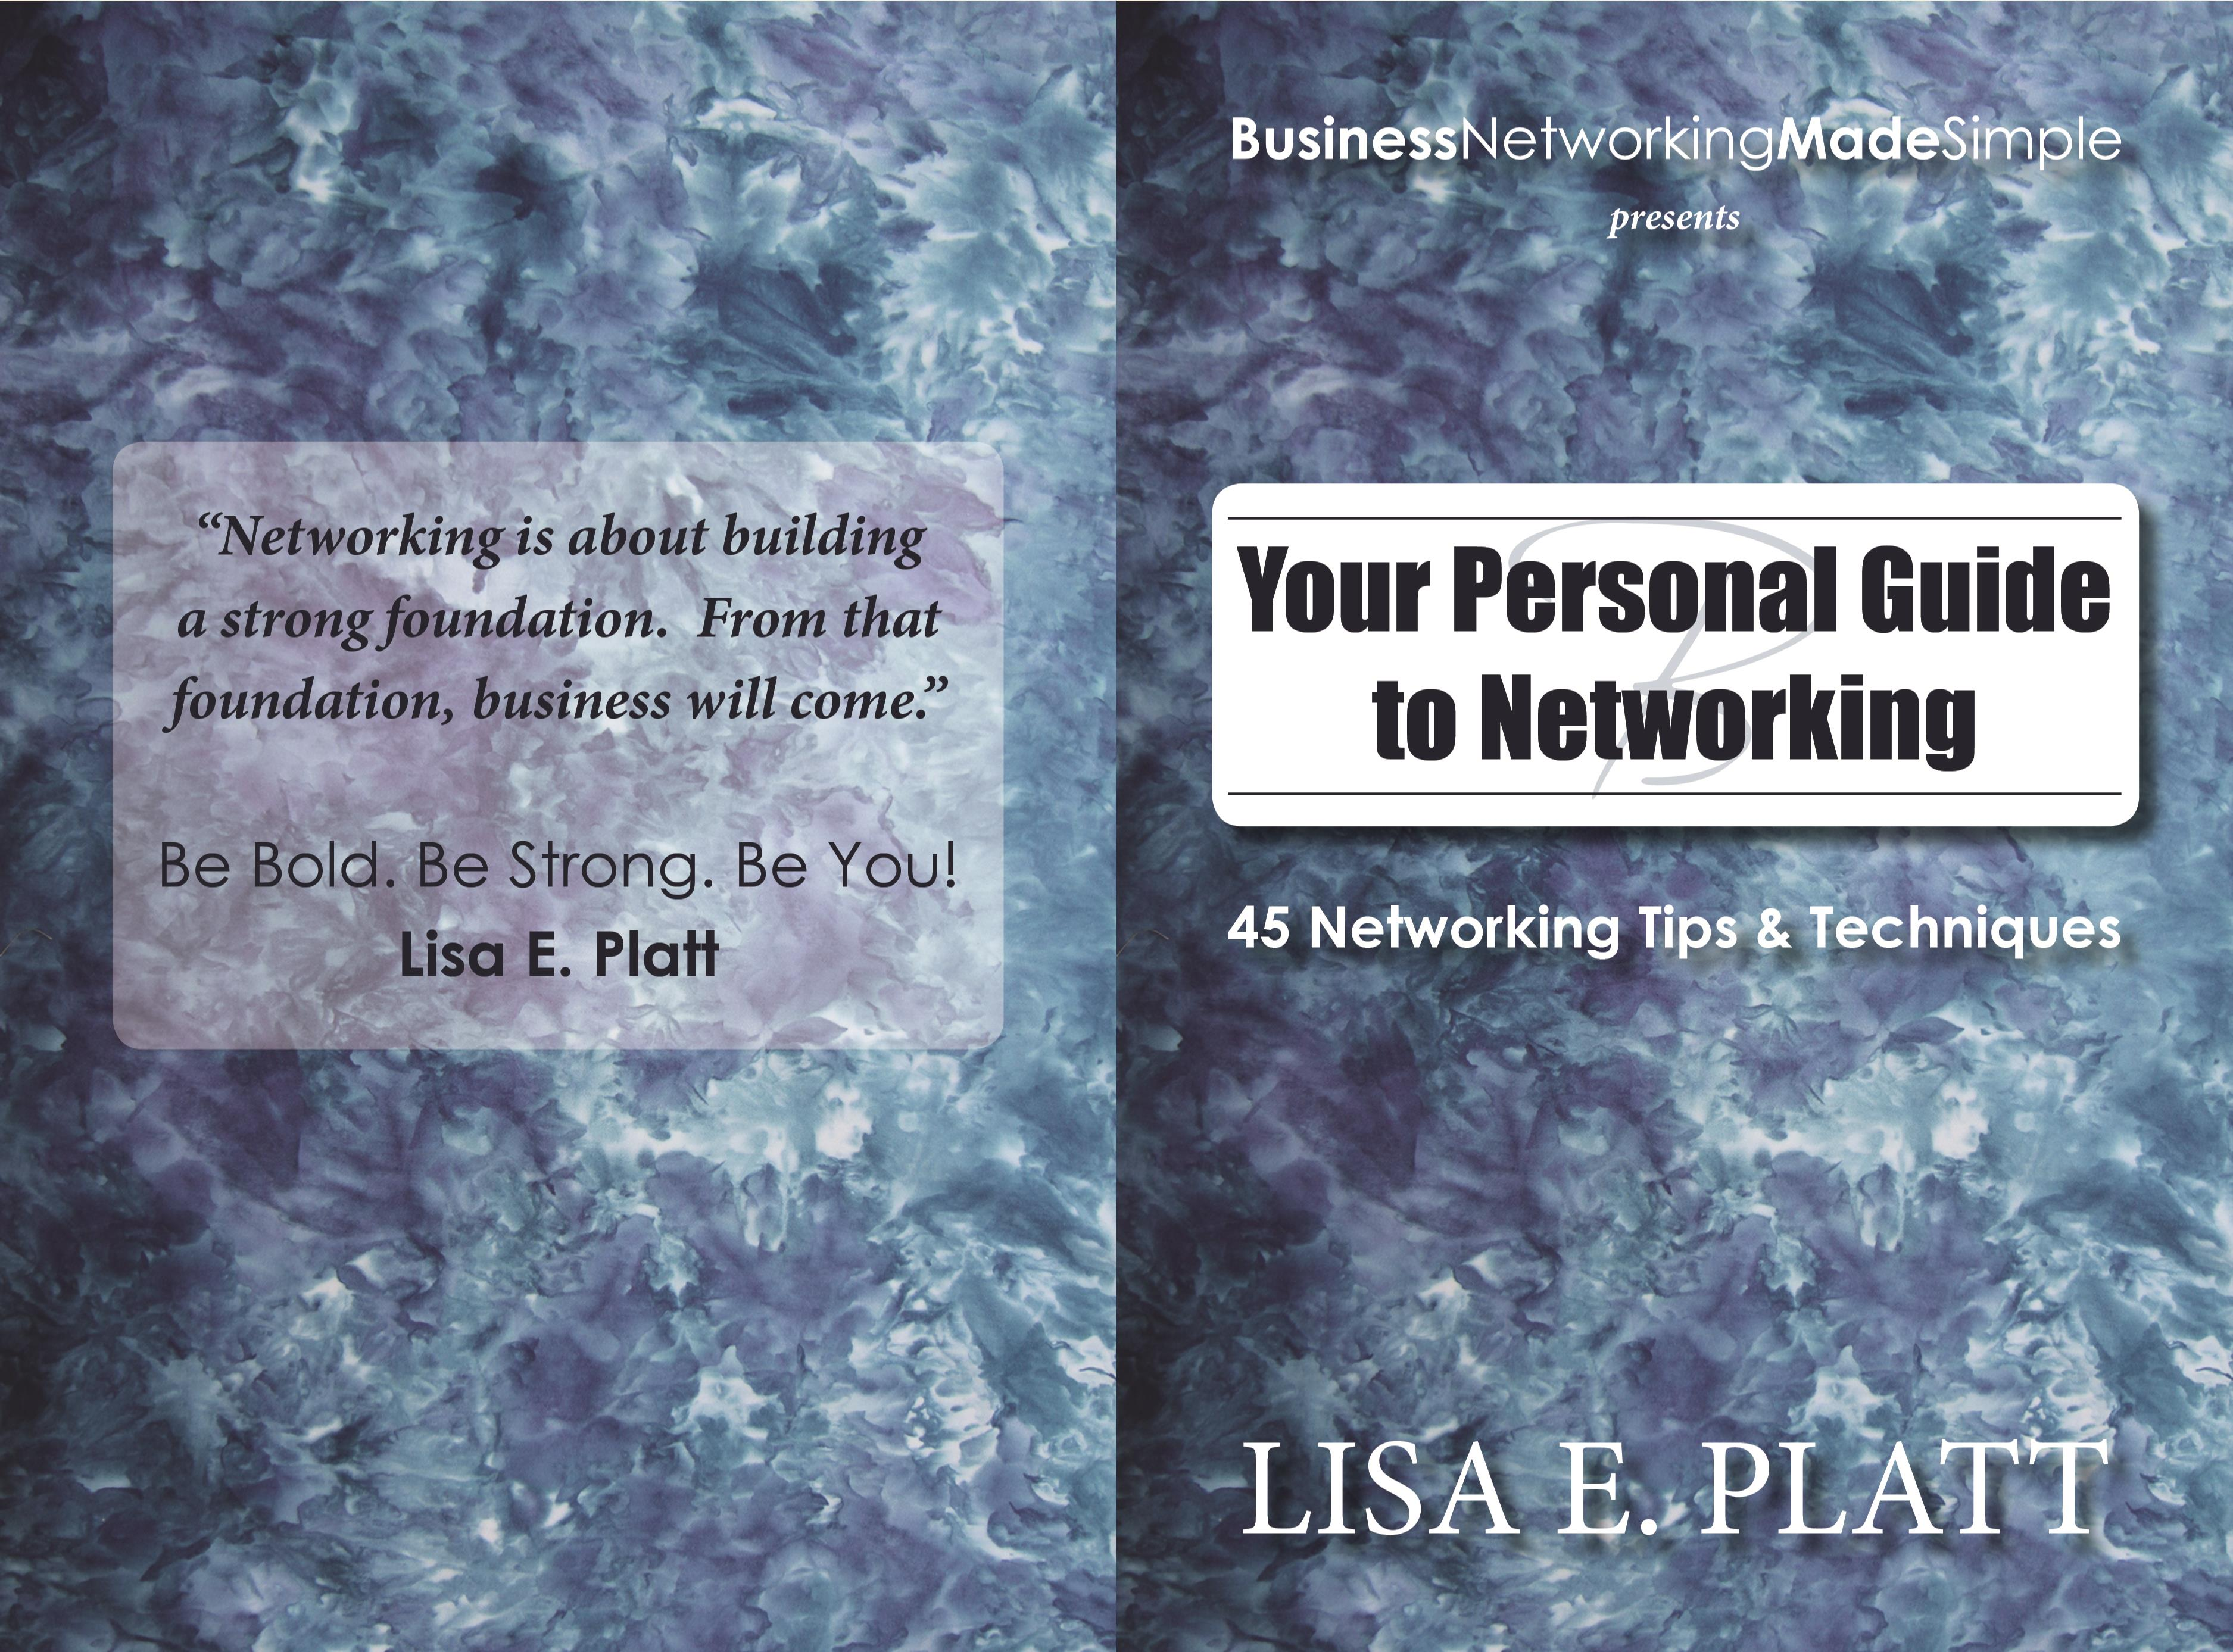 Your Personal Guide to Networking 45 Networking Tips cover image